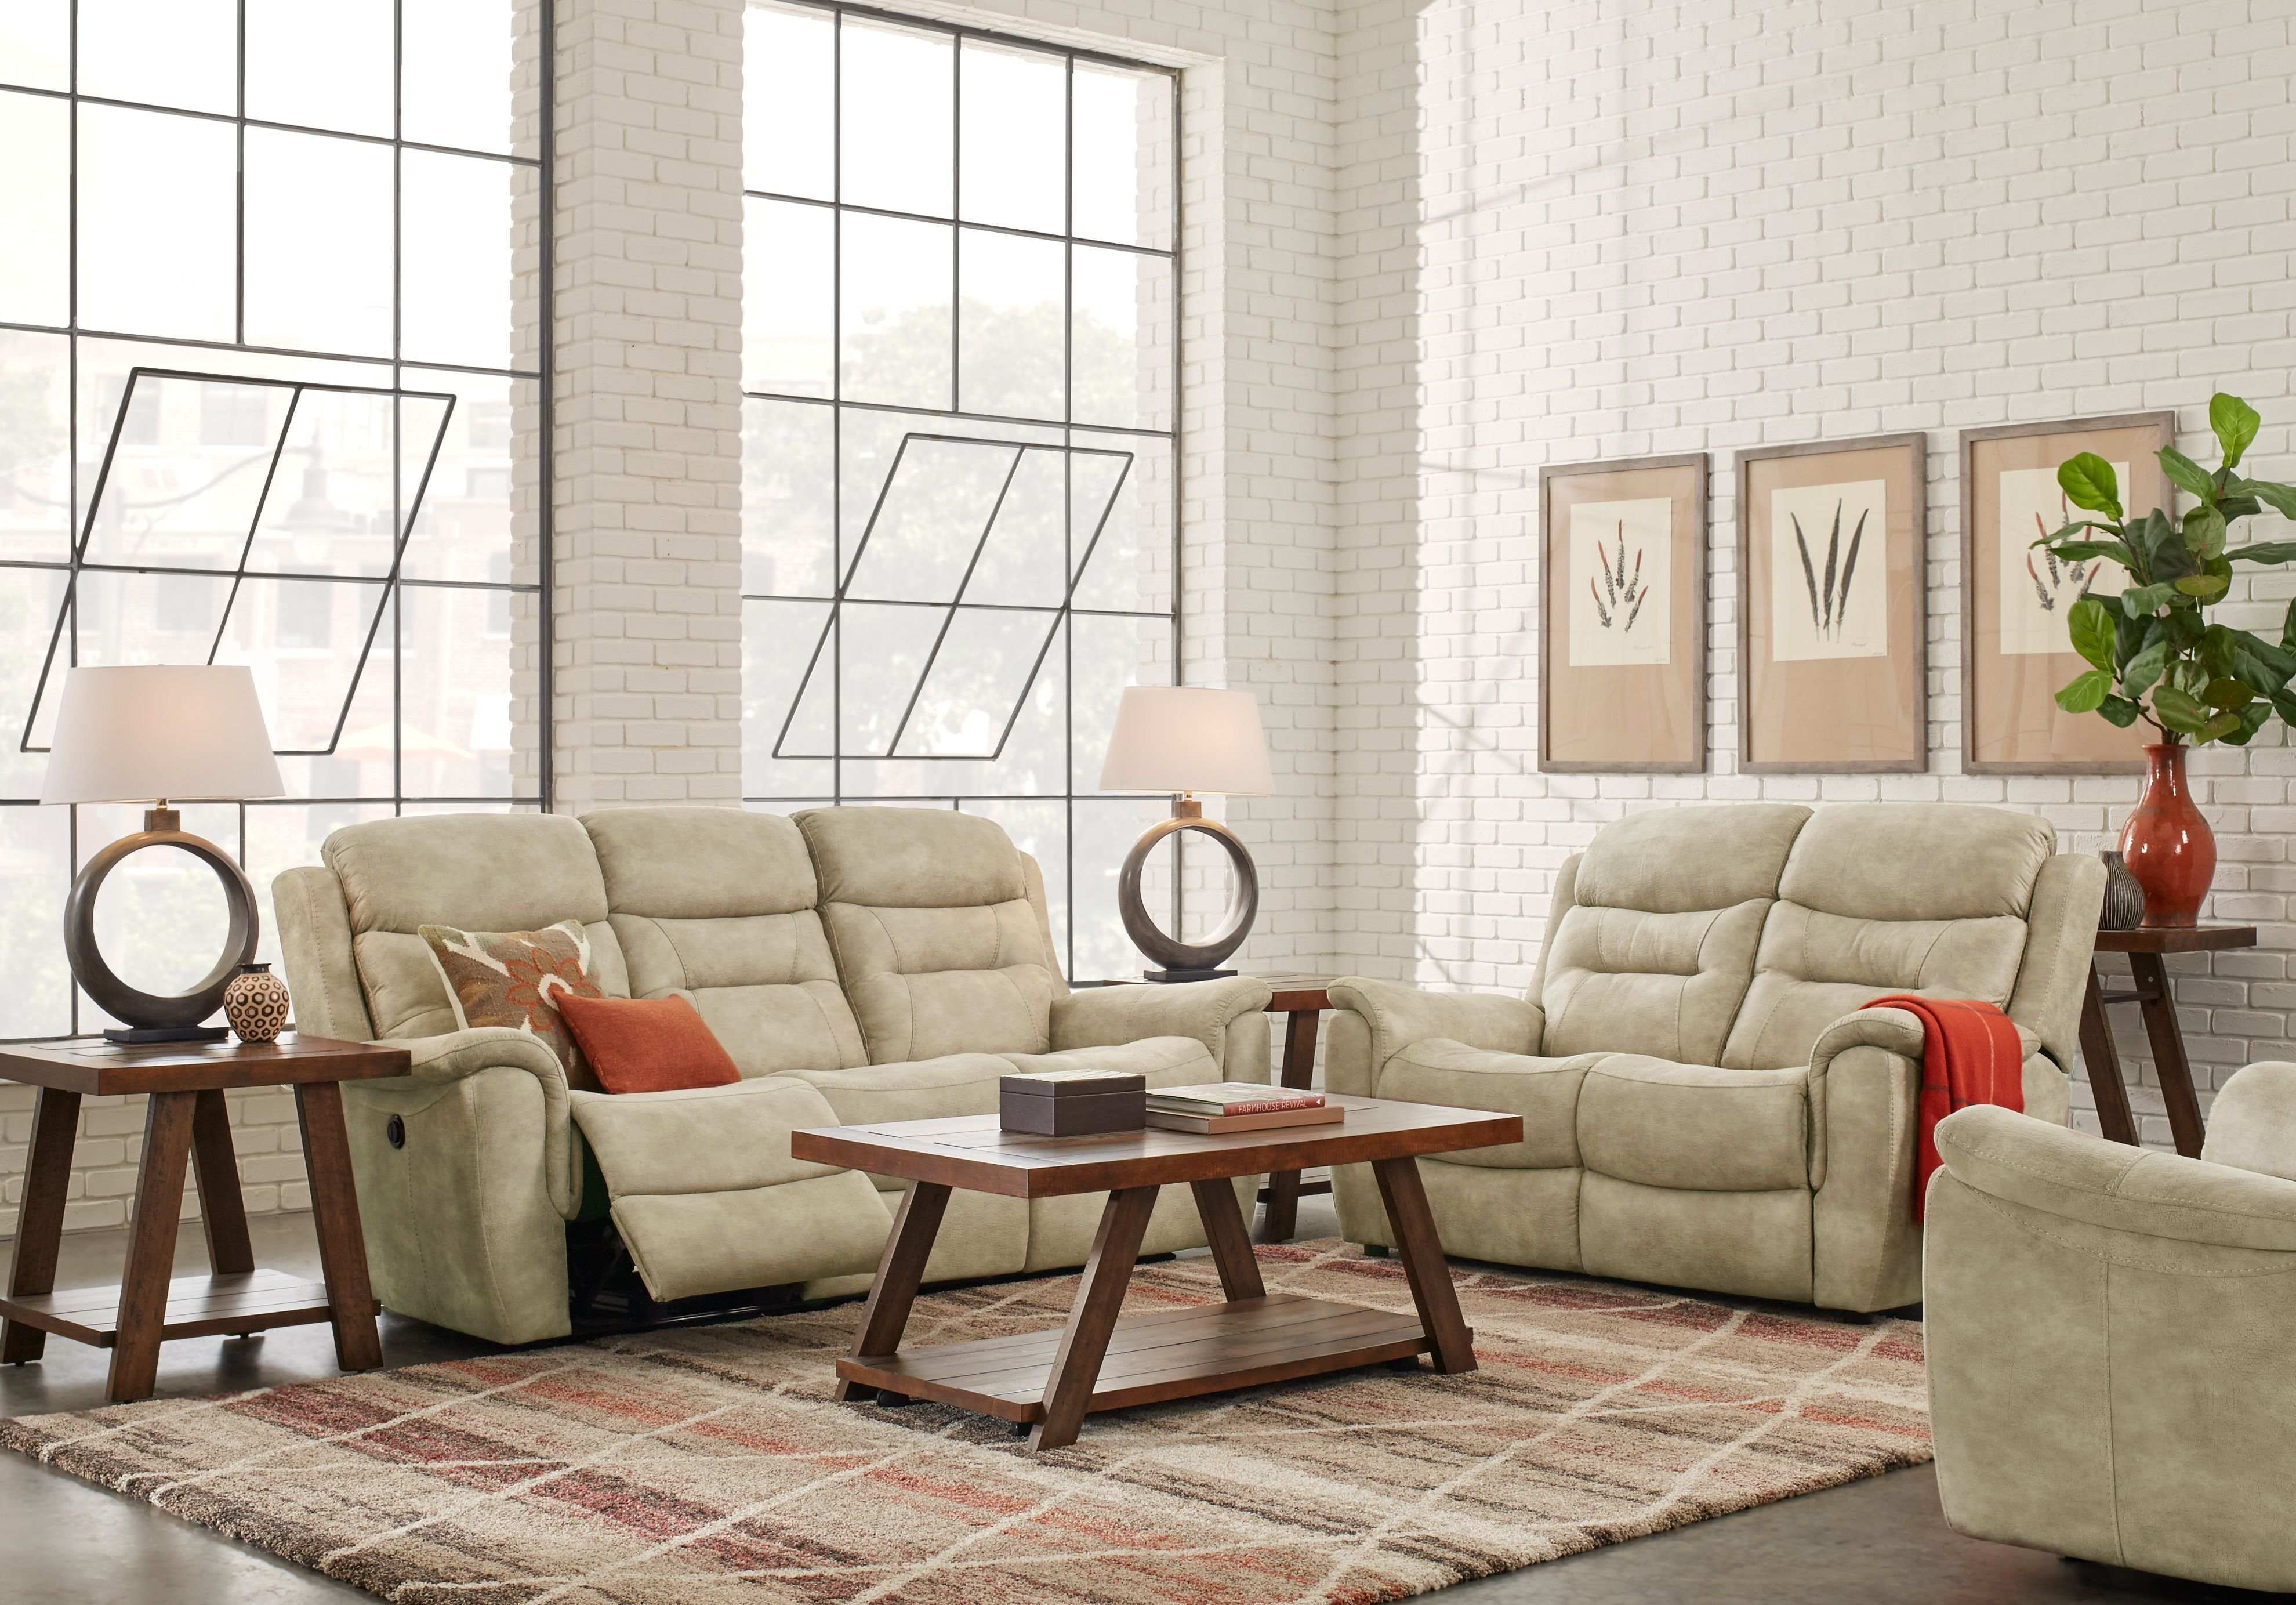 Halton Hills Sand 3 Pc Living Room With Reclining Sofa Living